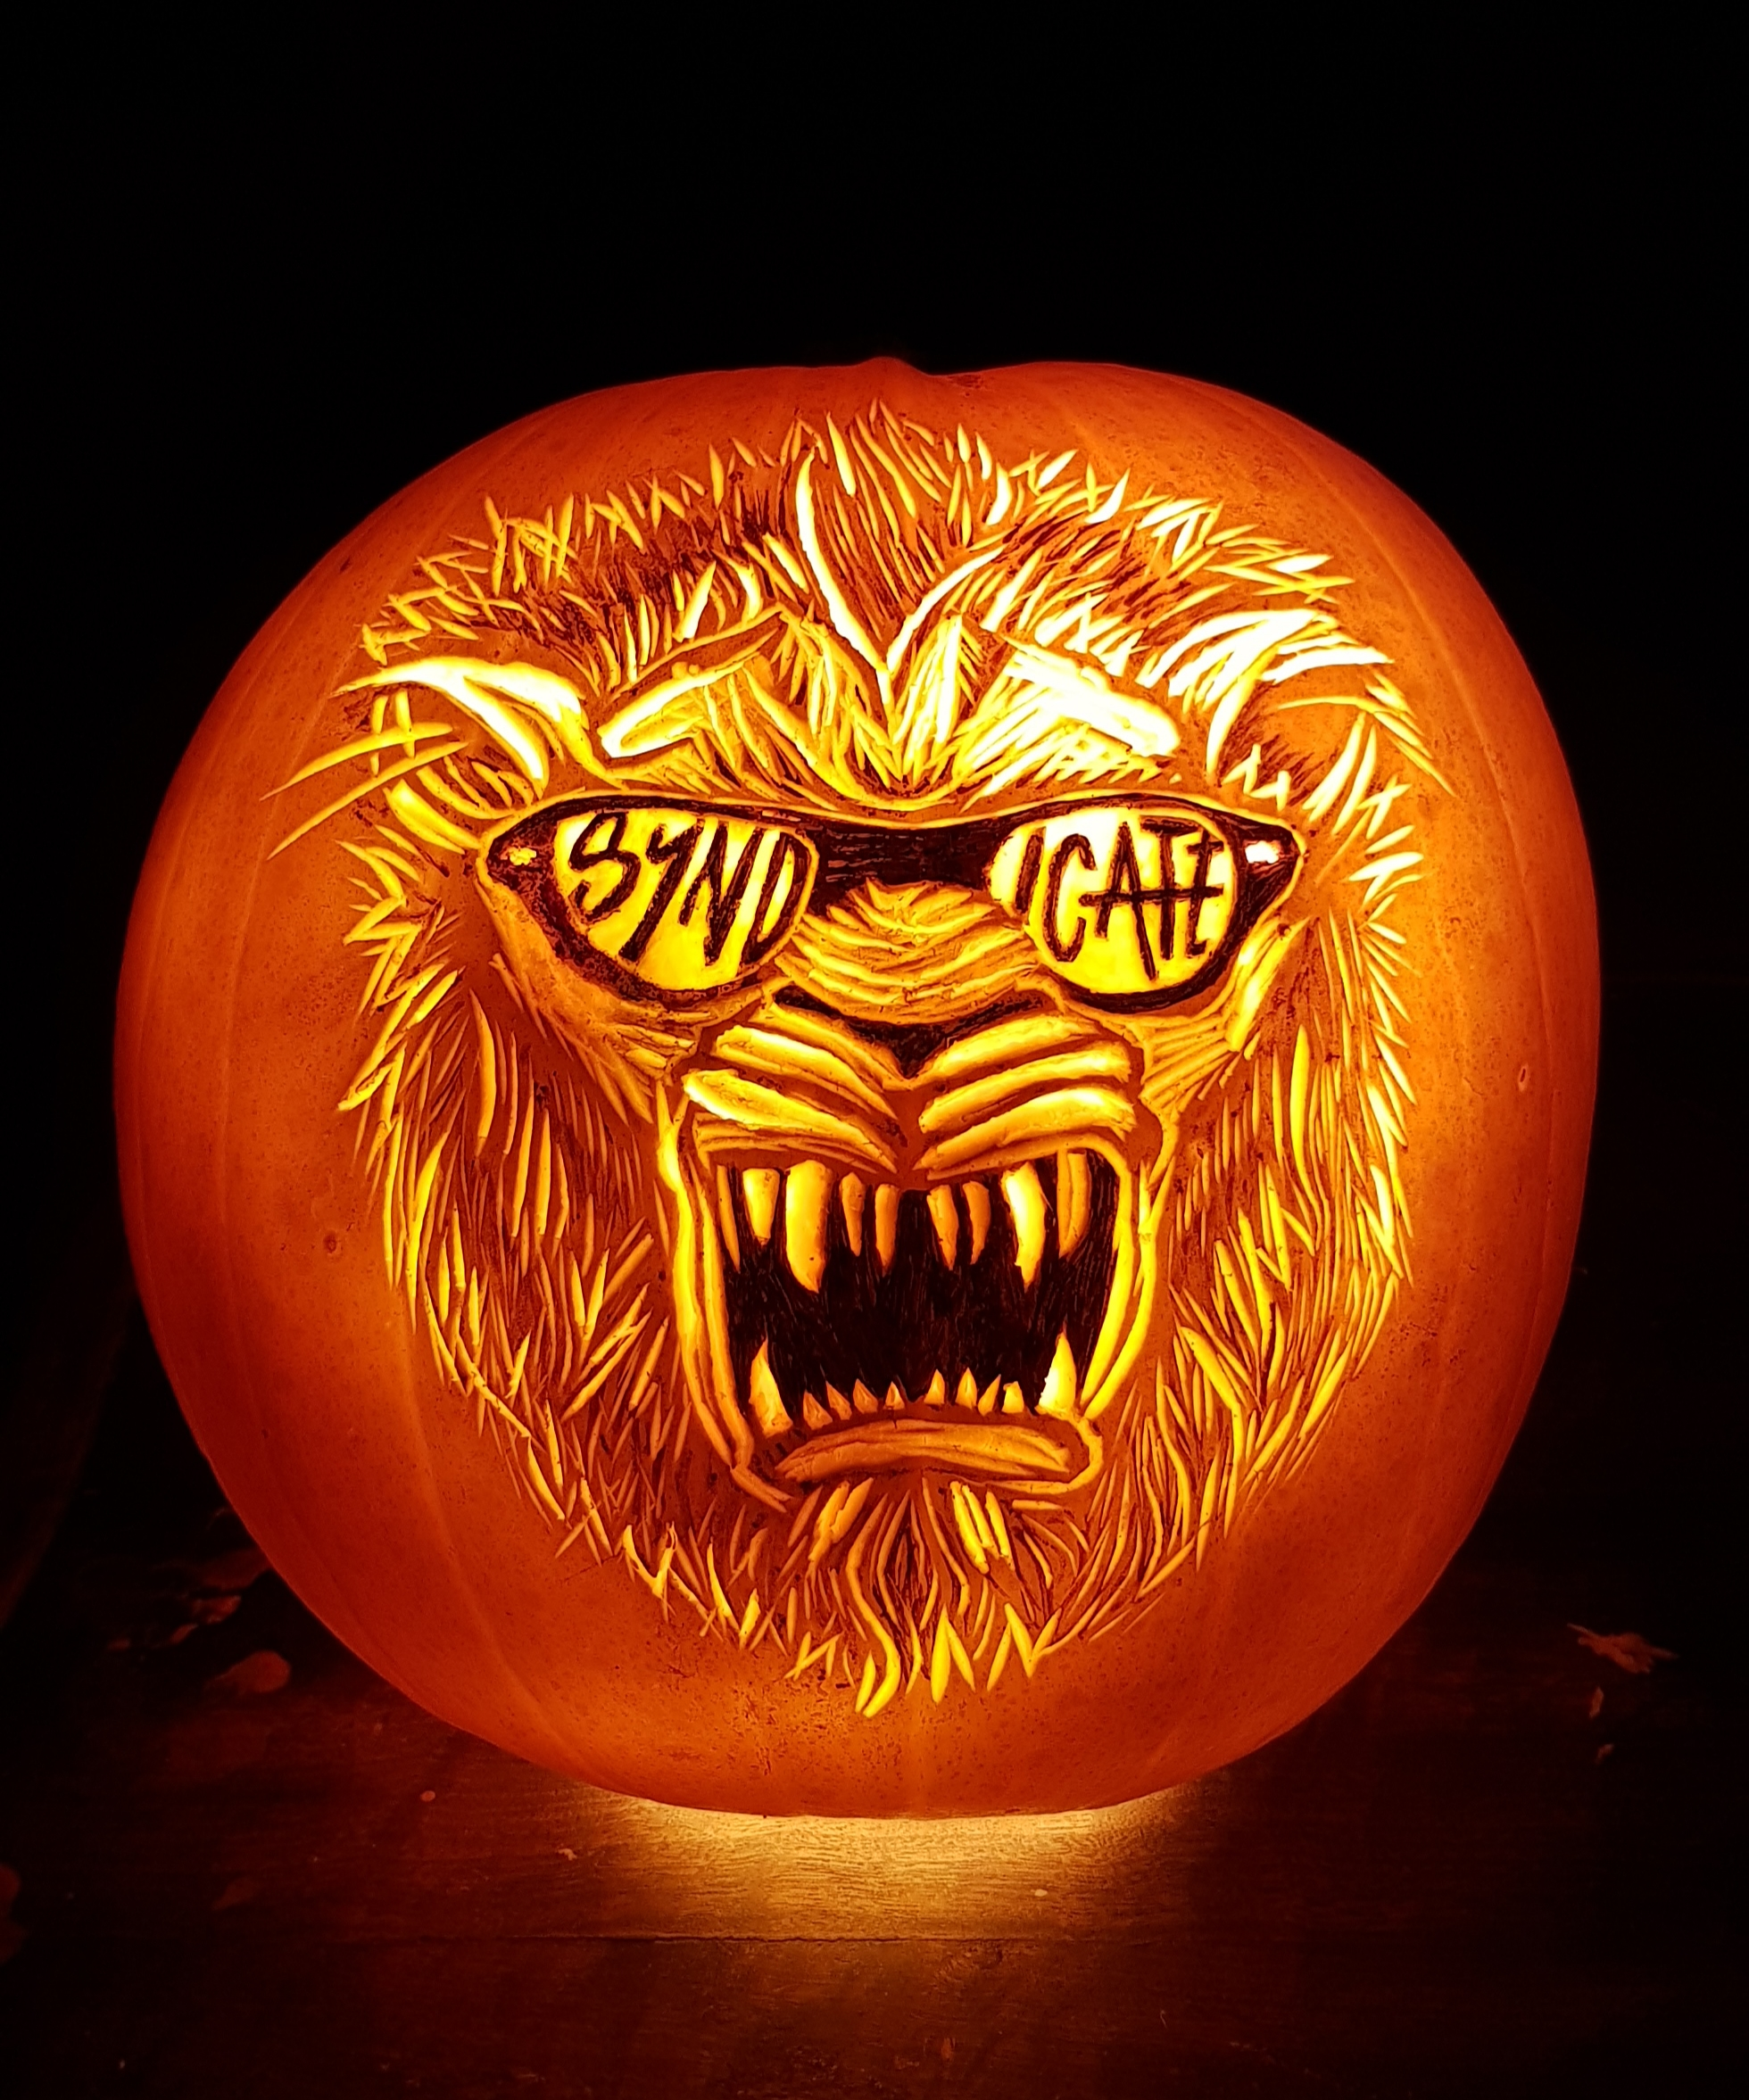 Syndicate logo pumpkin carvingv2